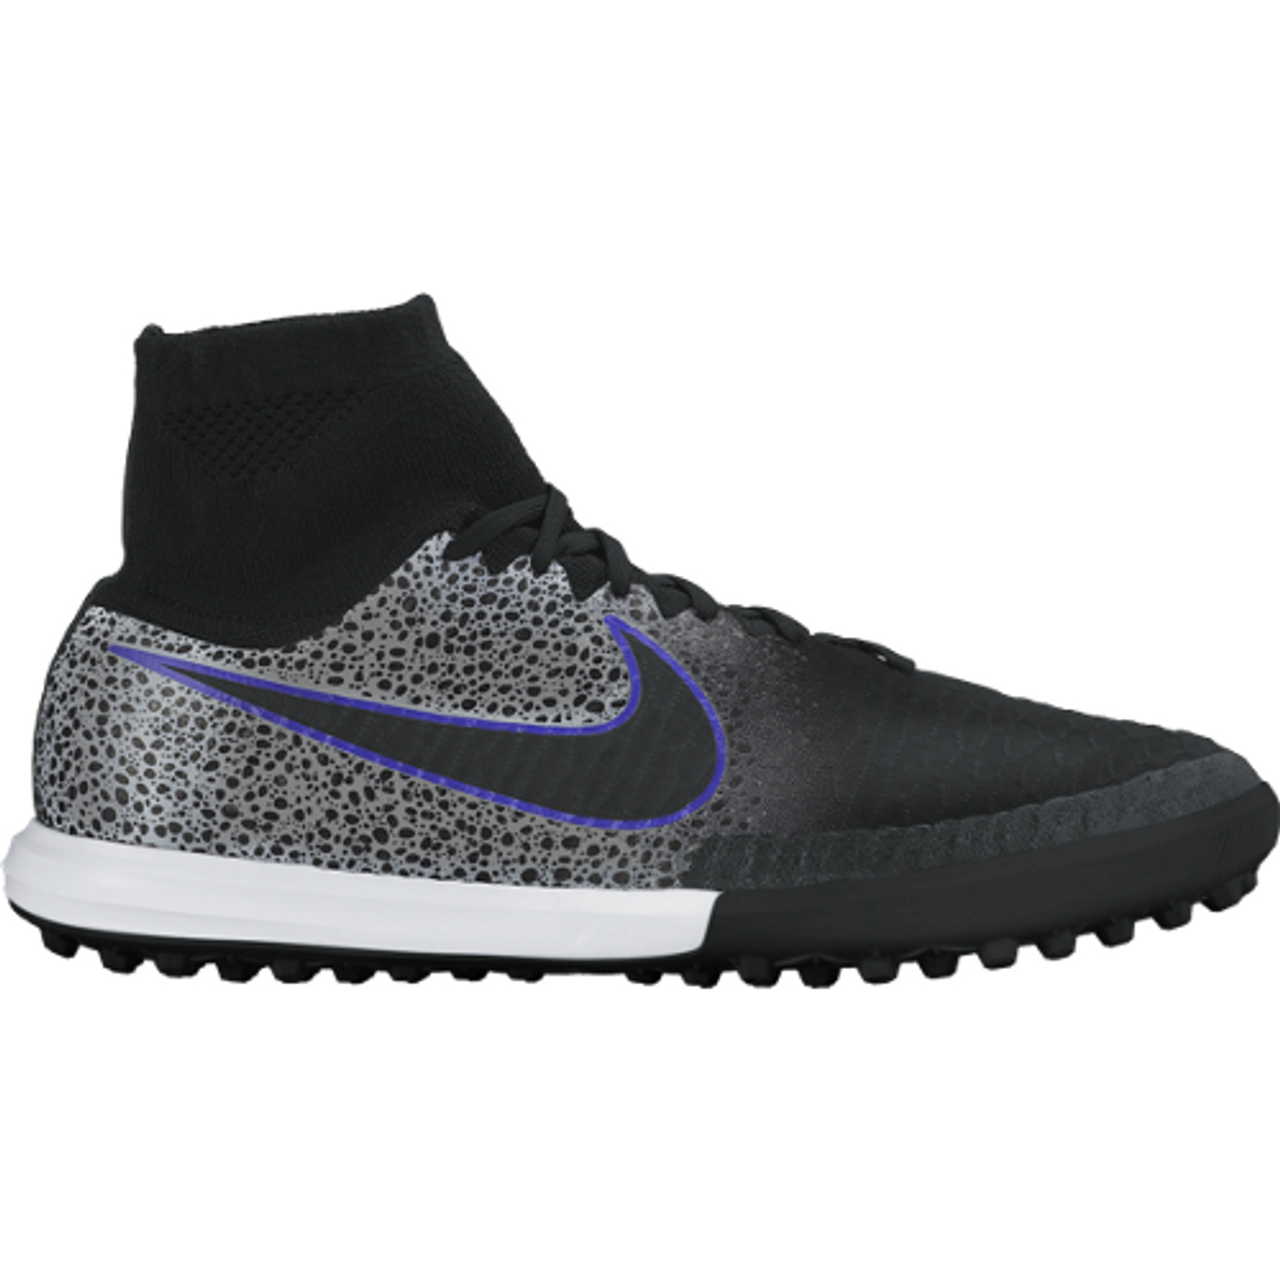 5aed3143f nike magistax proximo tf black wolf grey turf soccer shoes